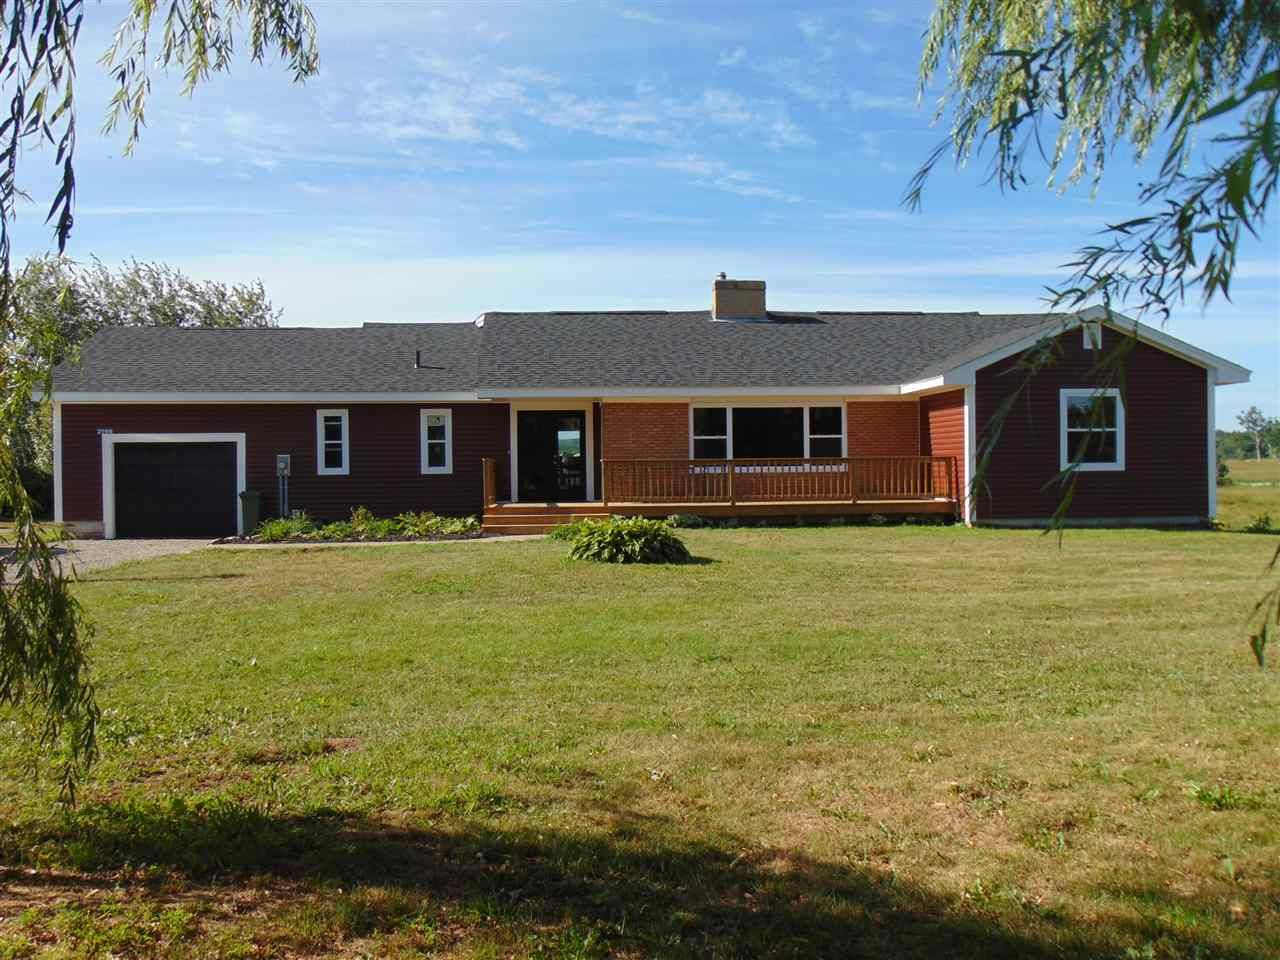 Main Photo: 2196 Lakewood Road in Upper Dyke: 404-Kings County Residential for sale (Annapolis Valley)  : MLS®# 202014768